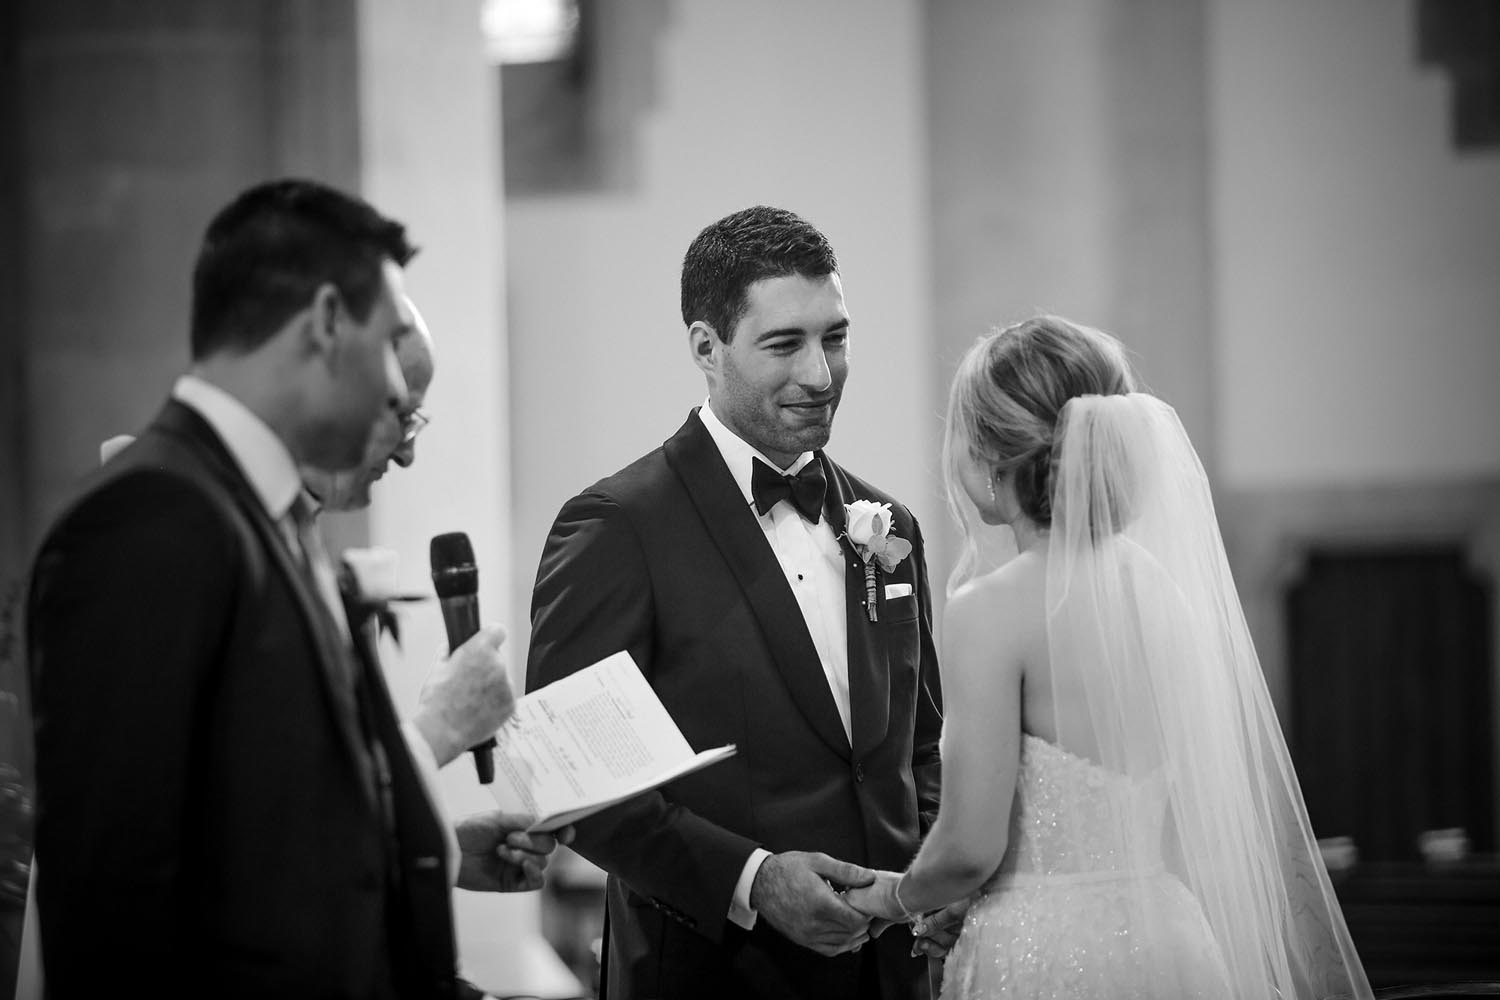 Bride and groom smiling at each other during their wedding ceremony